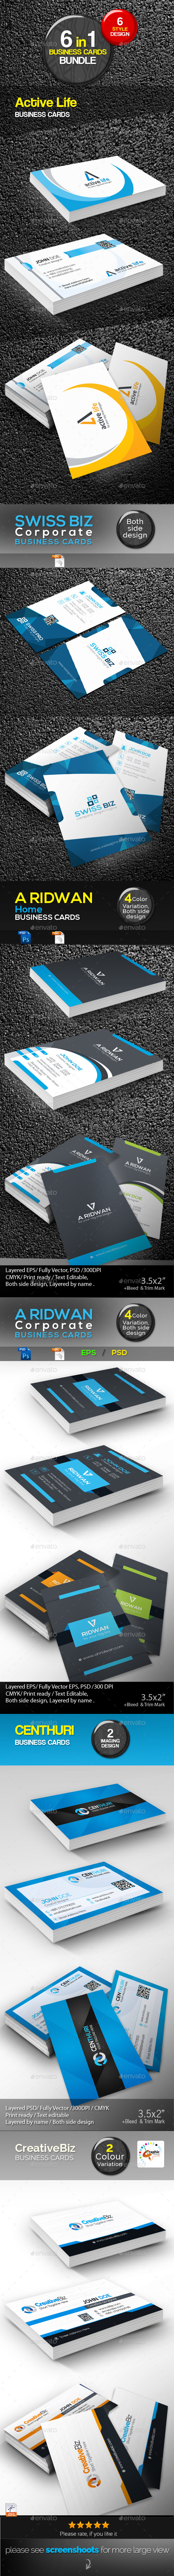 GraphicRiver Bundle corporate business card 6 in 1 10285143